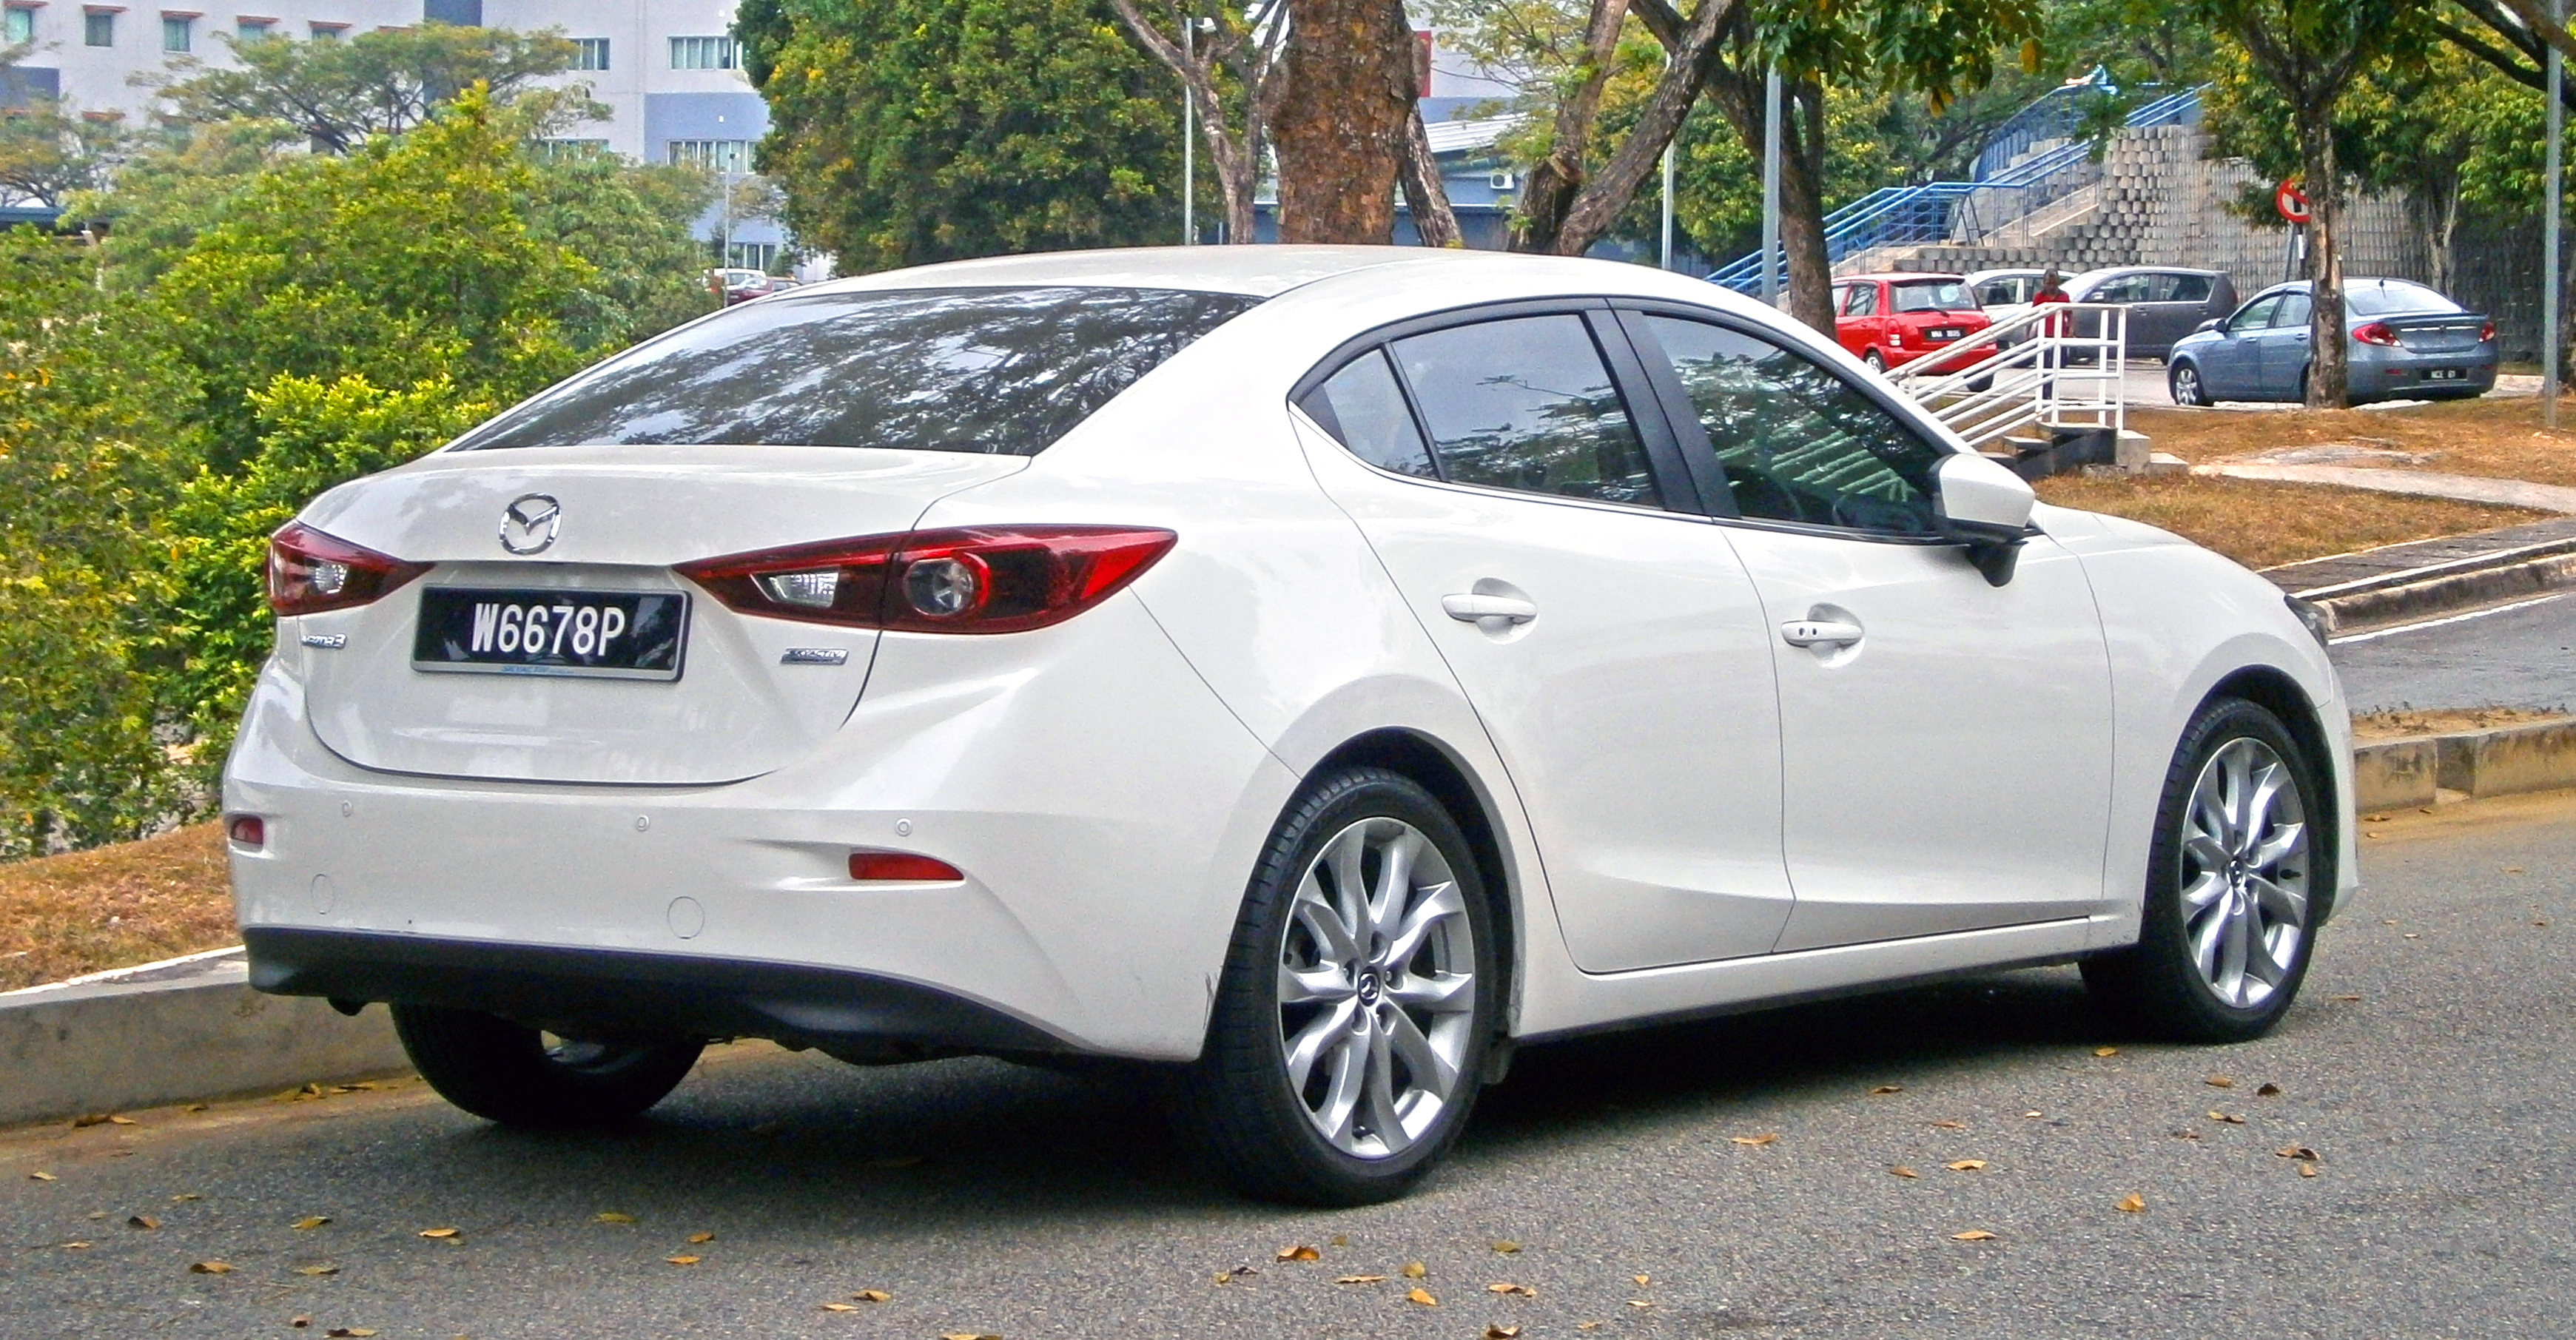 2014 mazda 3 pearl white images galleries with a bite. Black Bedroom Furniture Sets. Home Design Ideas